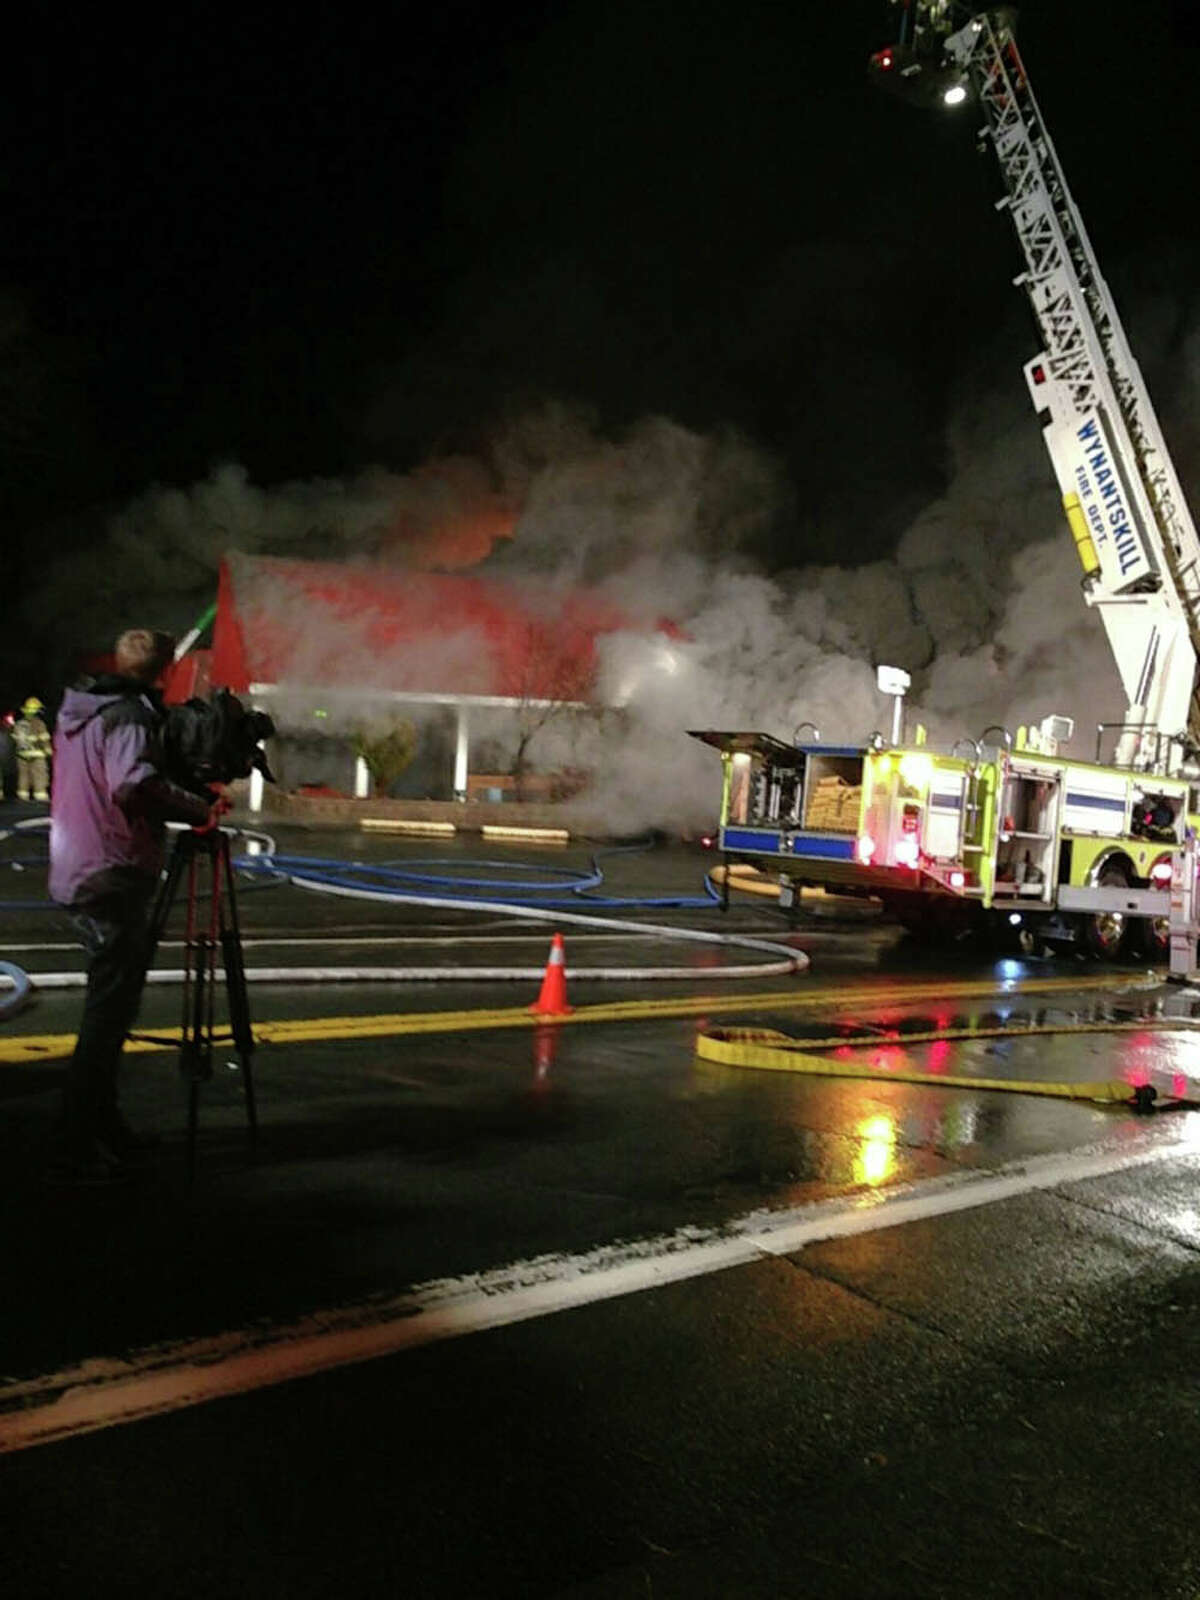 Villa Valenti Restaurant in Wynantskill is consumed by flames on Tuesday night. Charlie Hug / Times Union